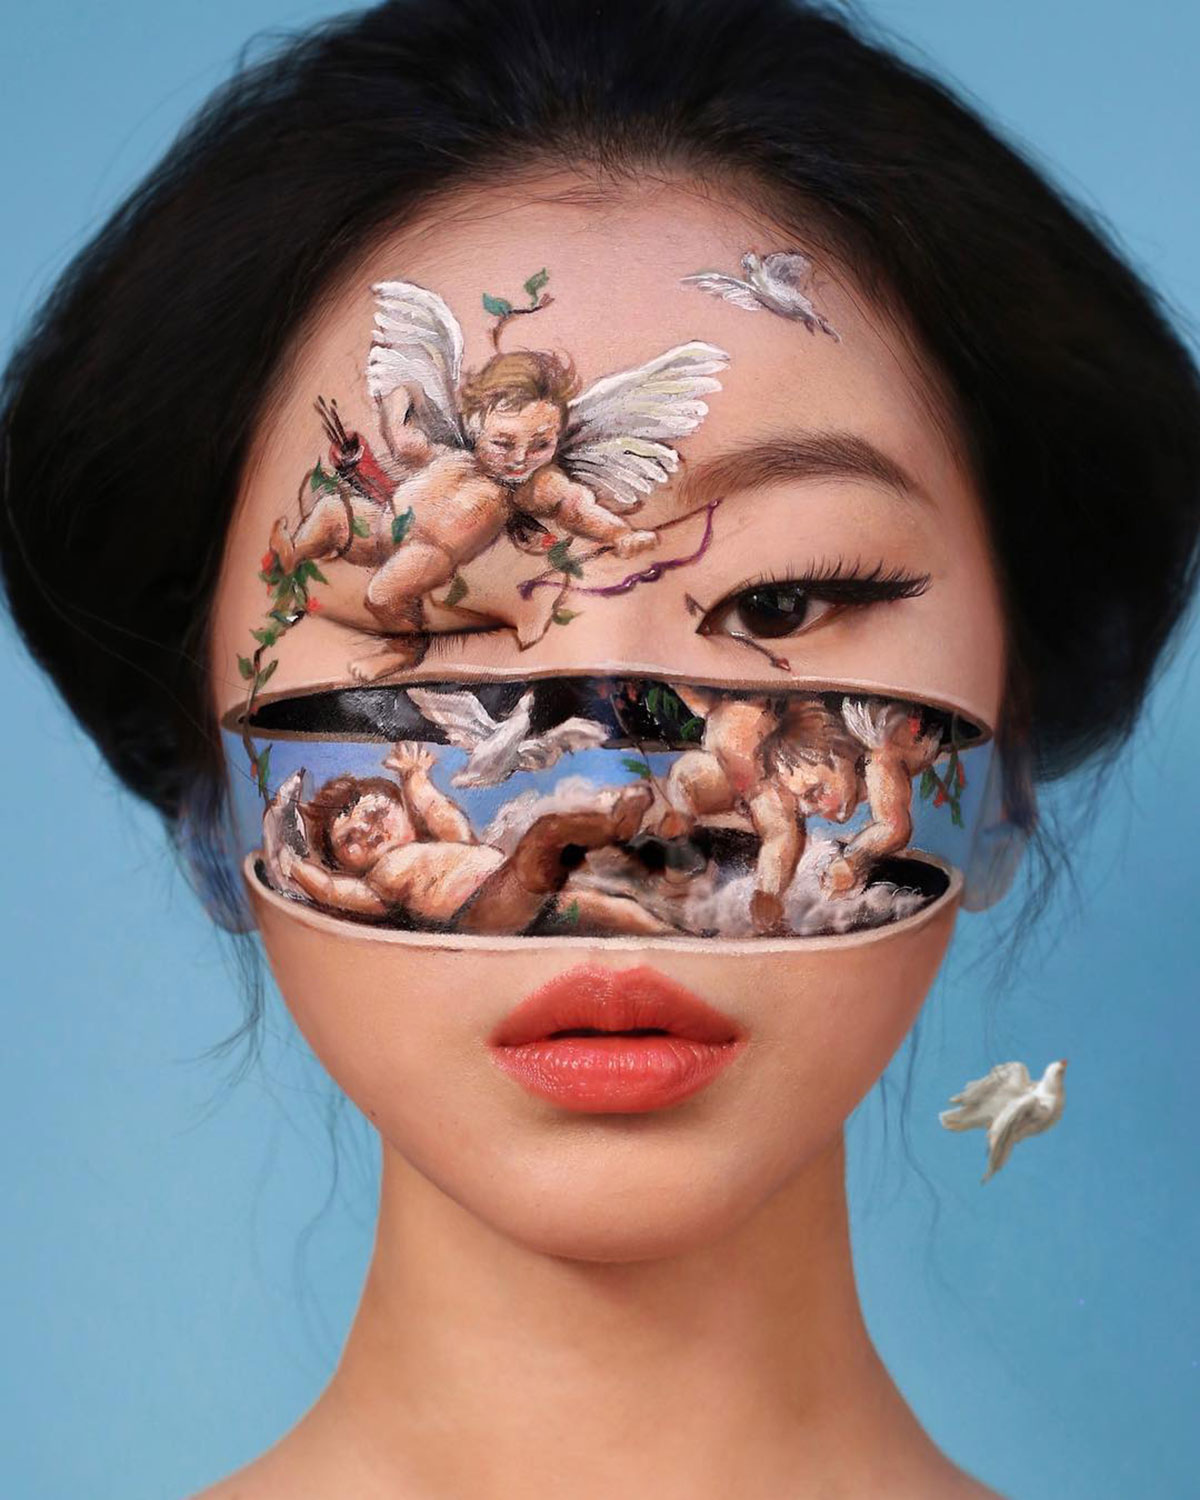 Artwork by Dain Yoon